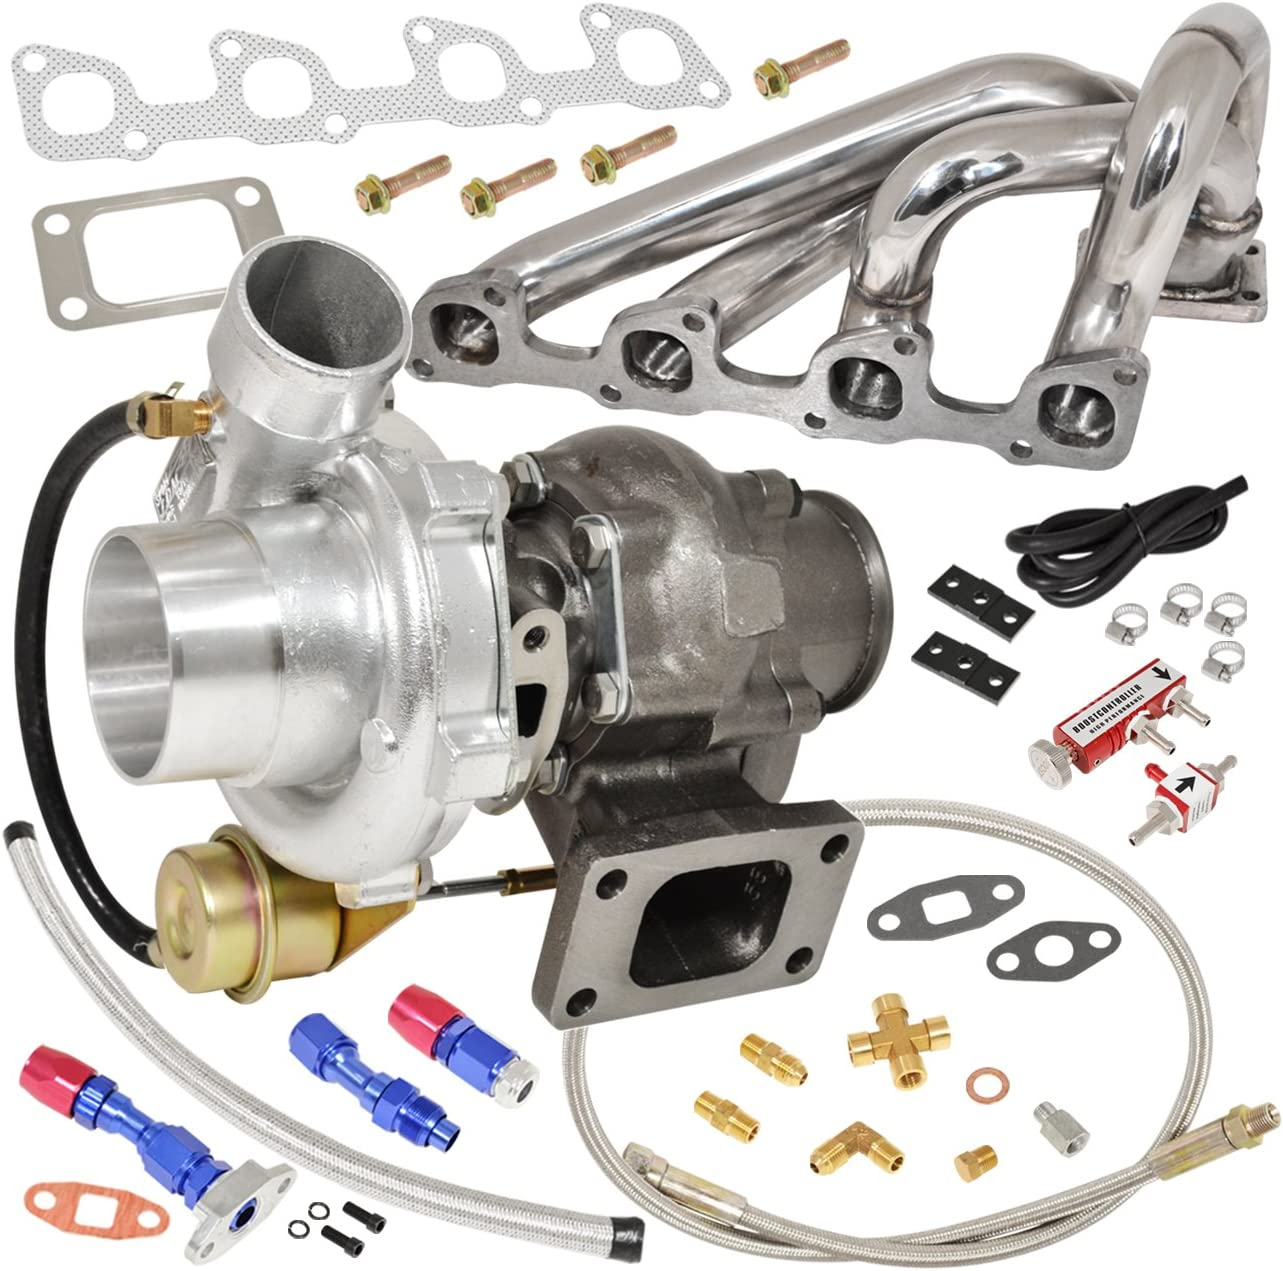 volvo 240 740 940 2 3l n a engine manifold stainless steel t3 t4 v band oil cooled turbo charger with internal wastegate oil return drain line kit boost controller red volvo 240 740 940 2 3l n a engine